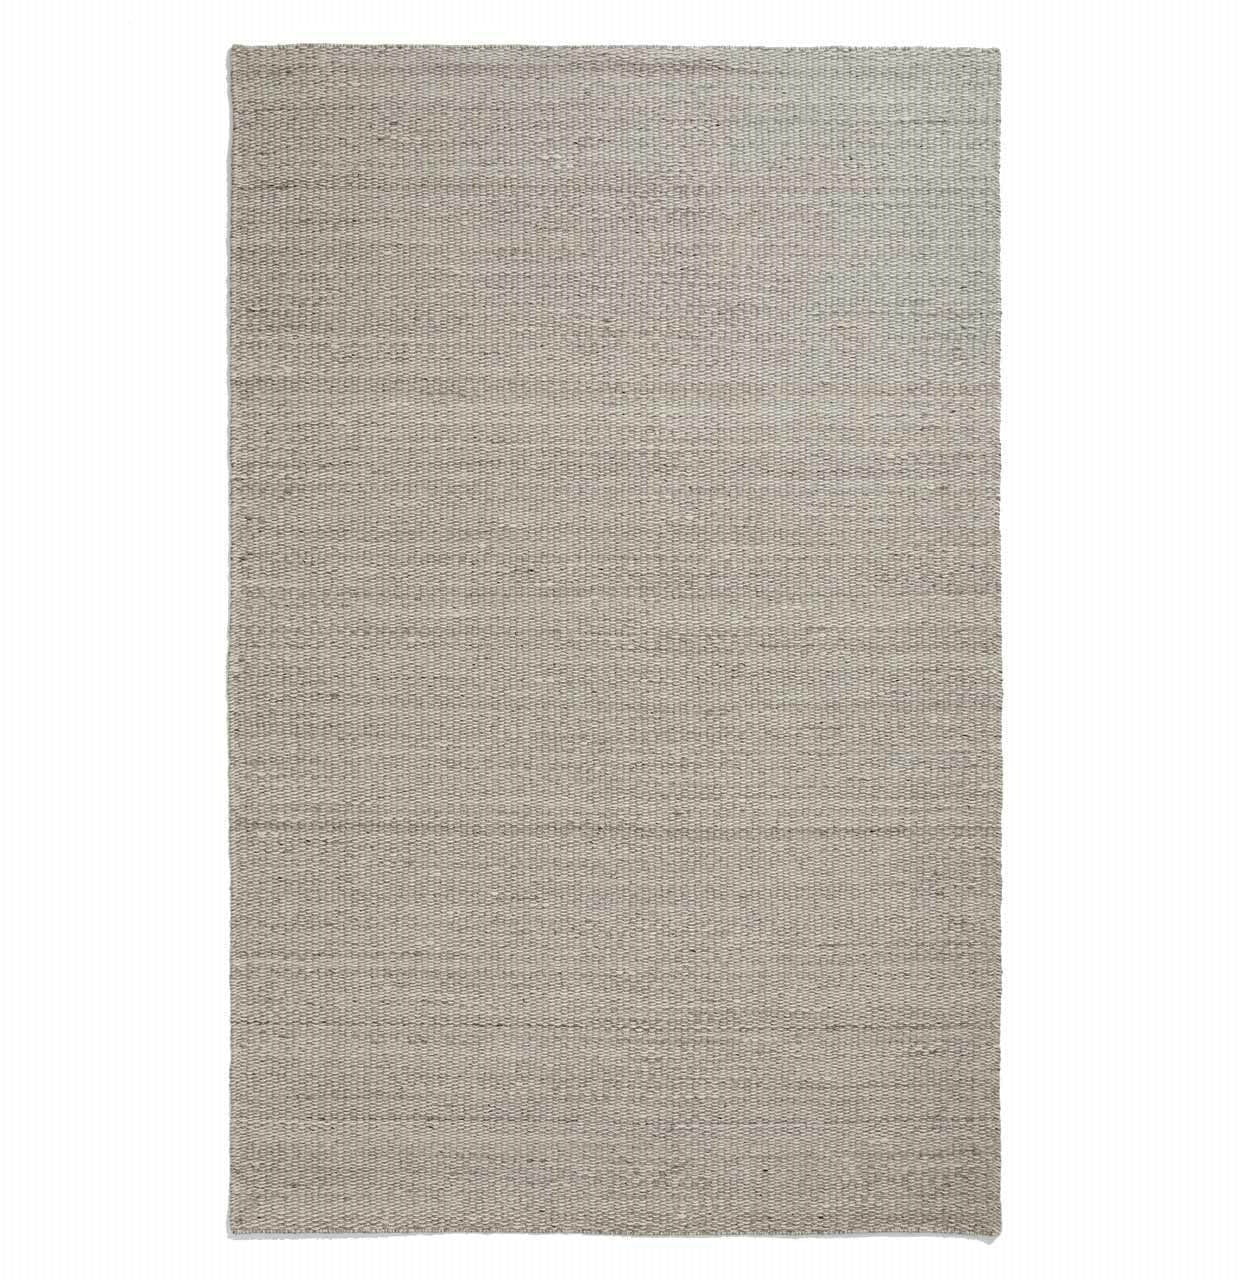 Jimara Rug Feather 200 x 300cm